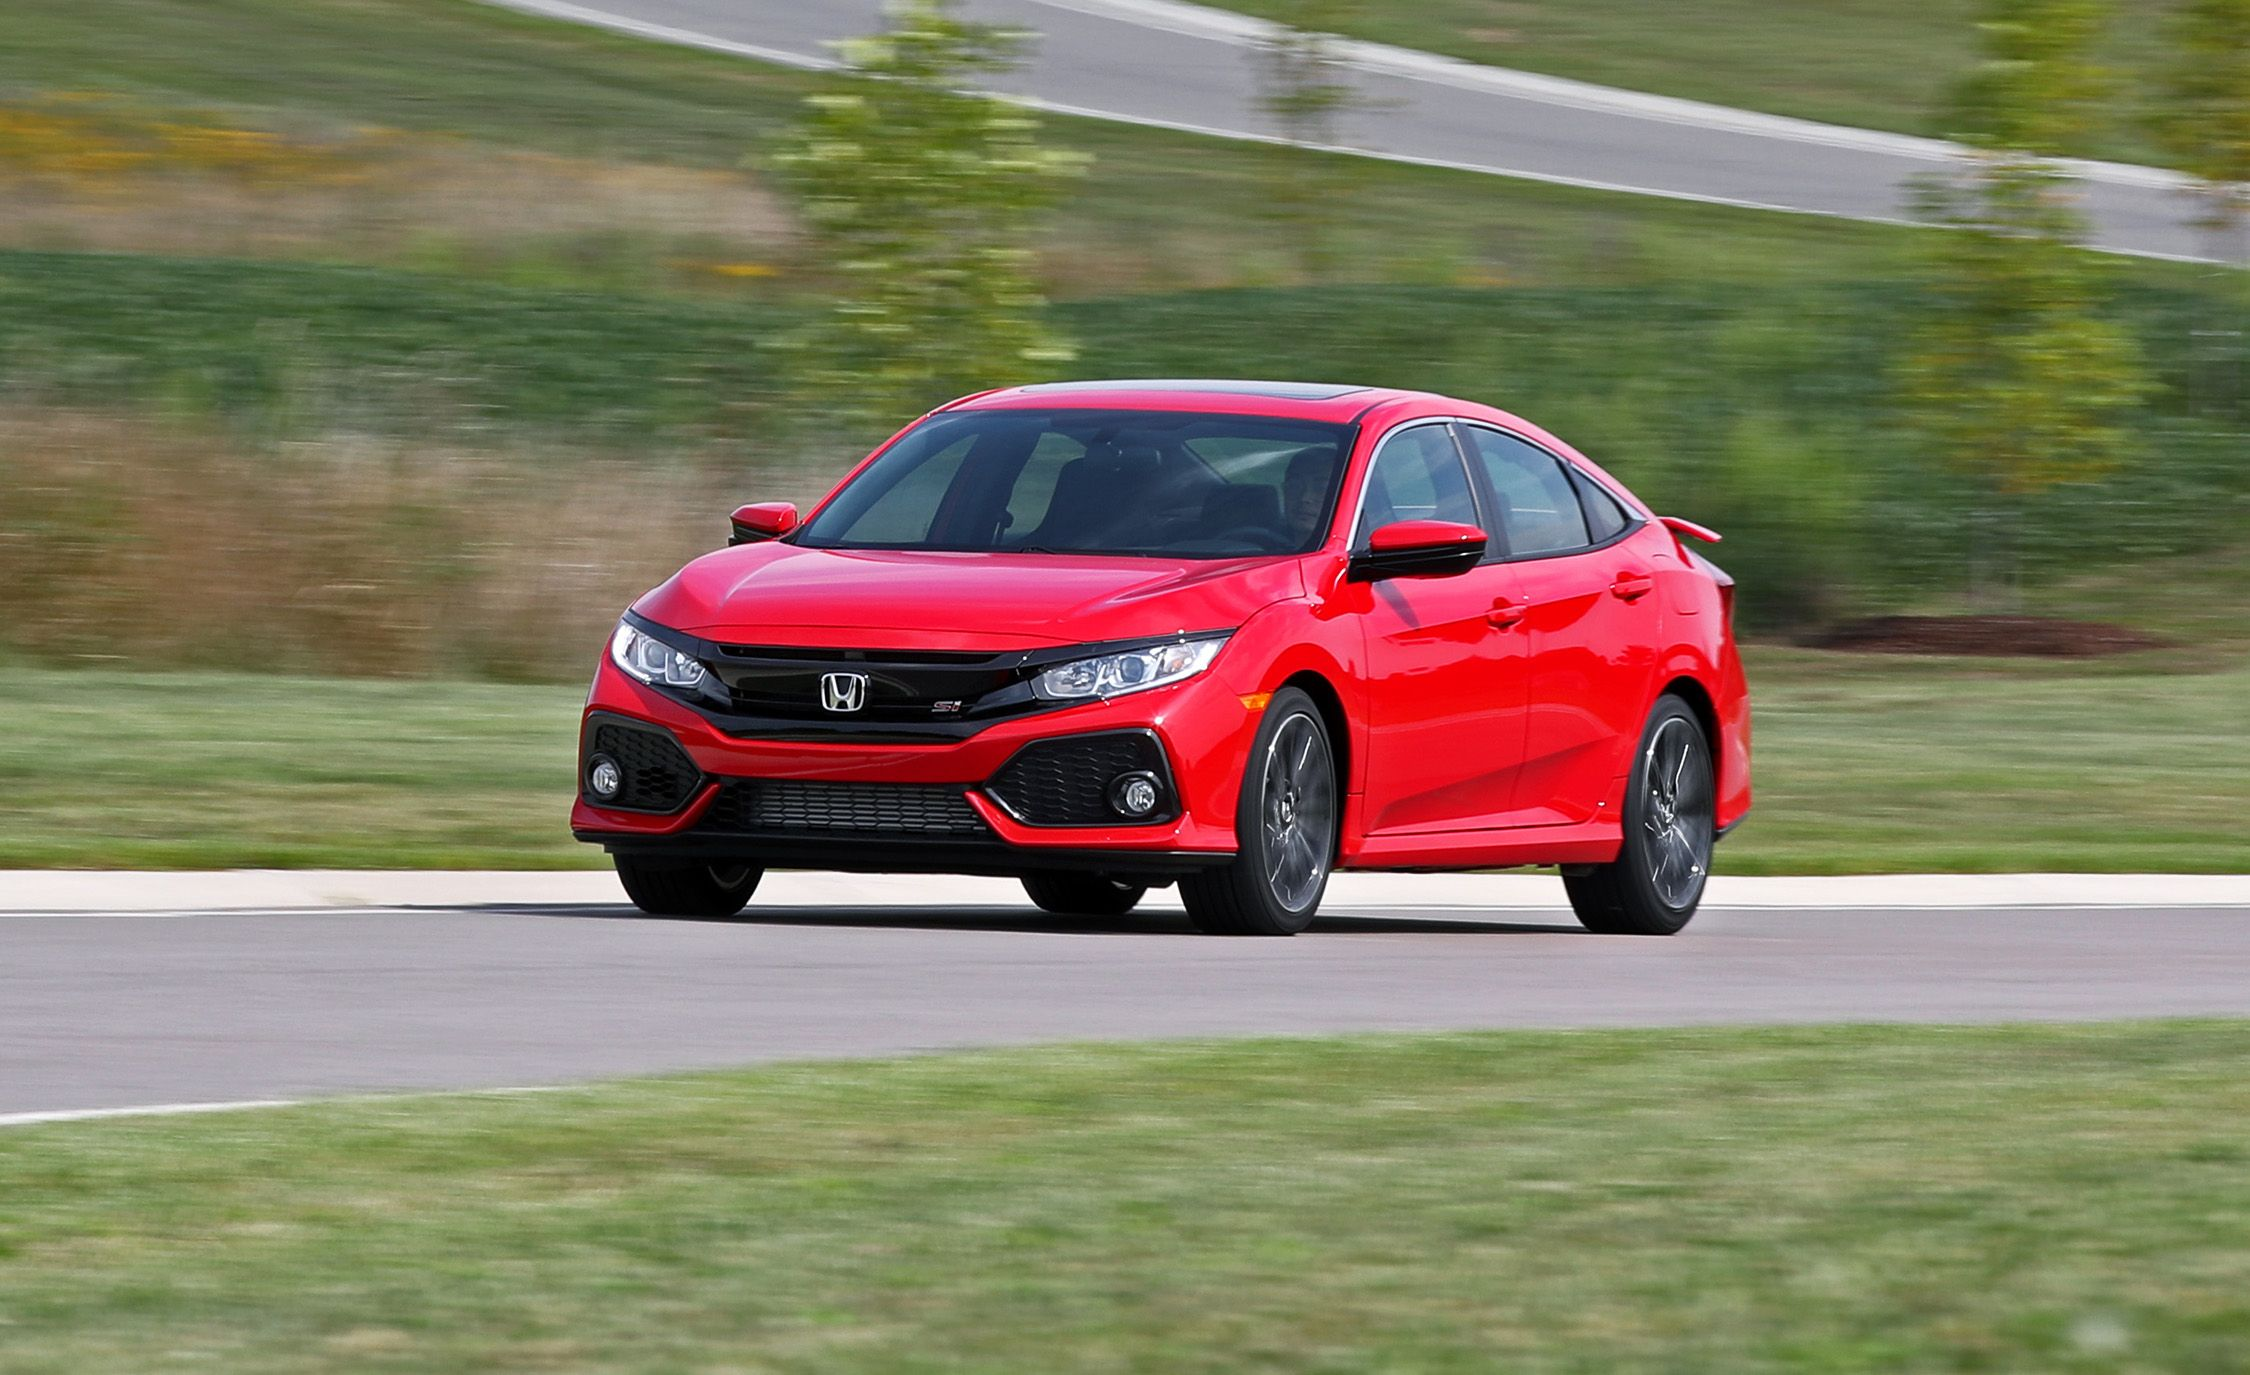 honda civic si reviews honda civic si price photos and specs car and driver. Black Bedroom Furniture Sets. Home Design Ideas